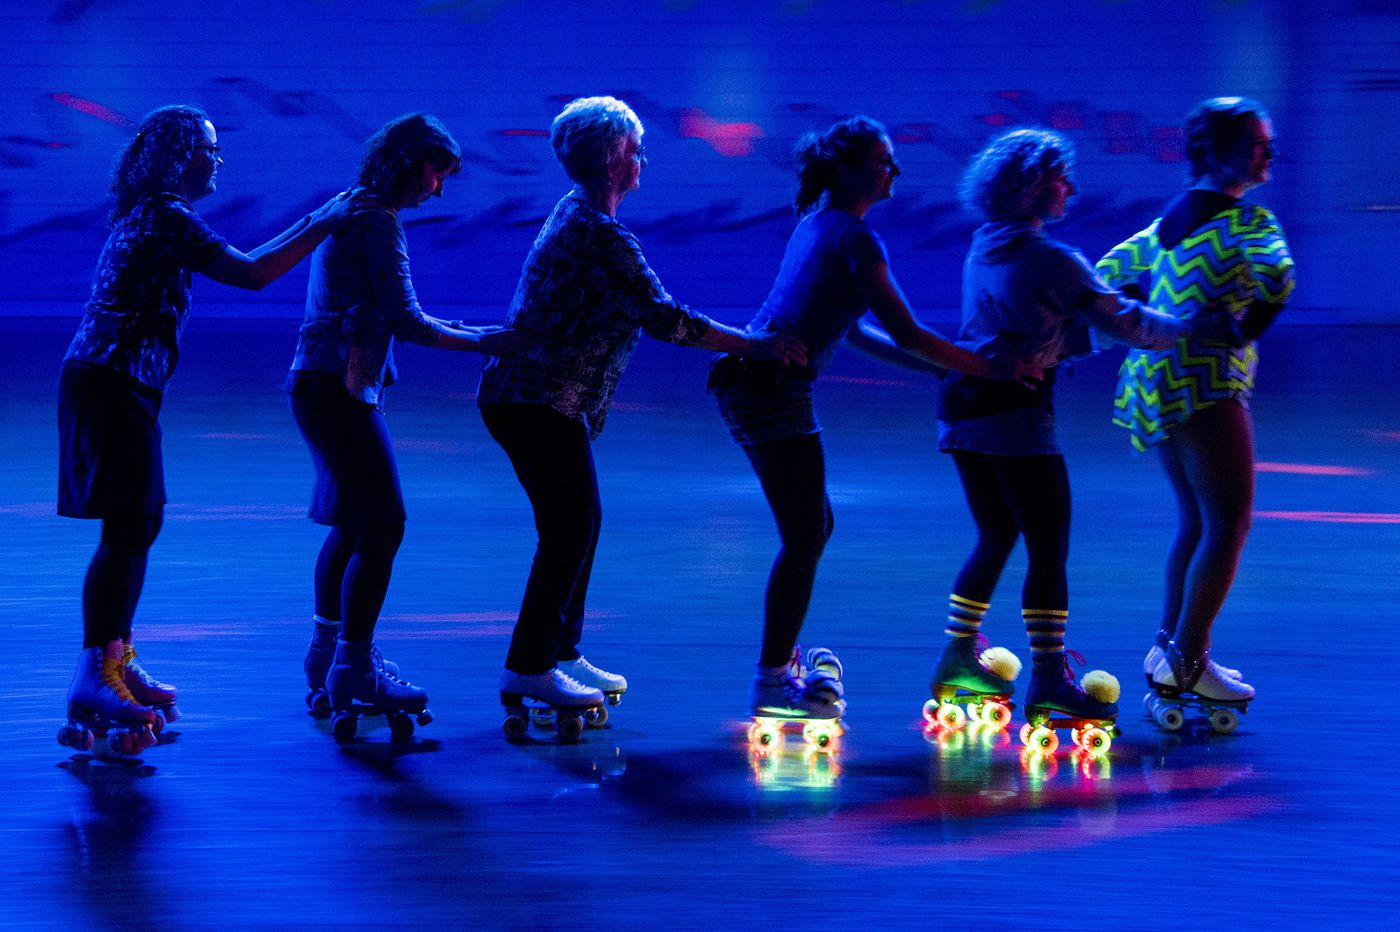 The thrill of the skate. There's a roller rink revival in Philly and beyond.